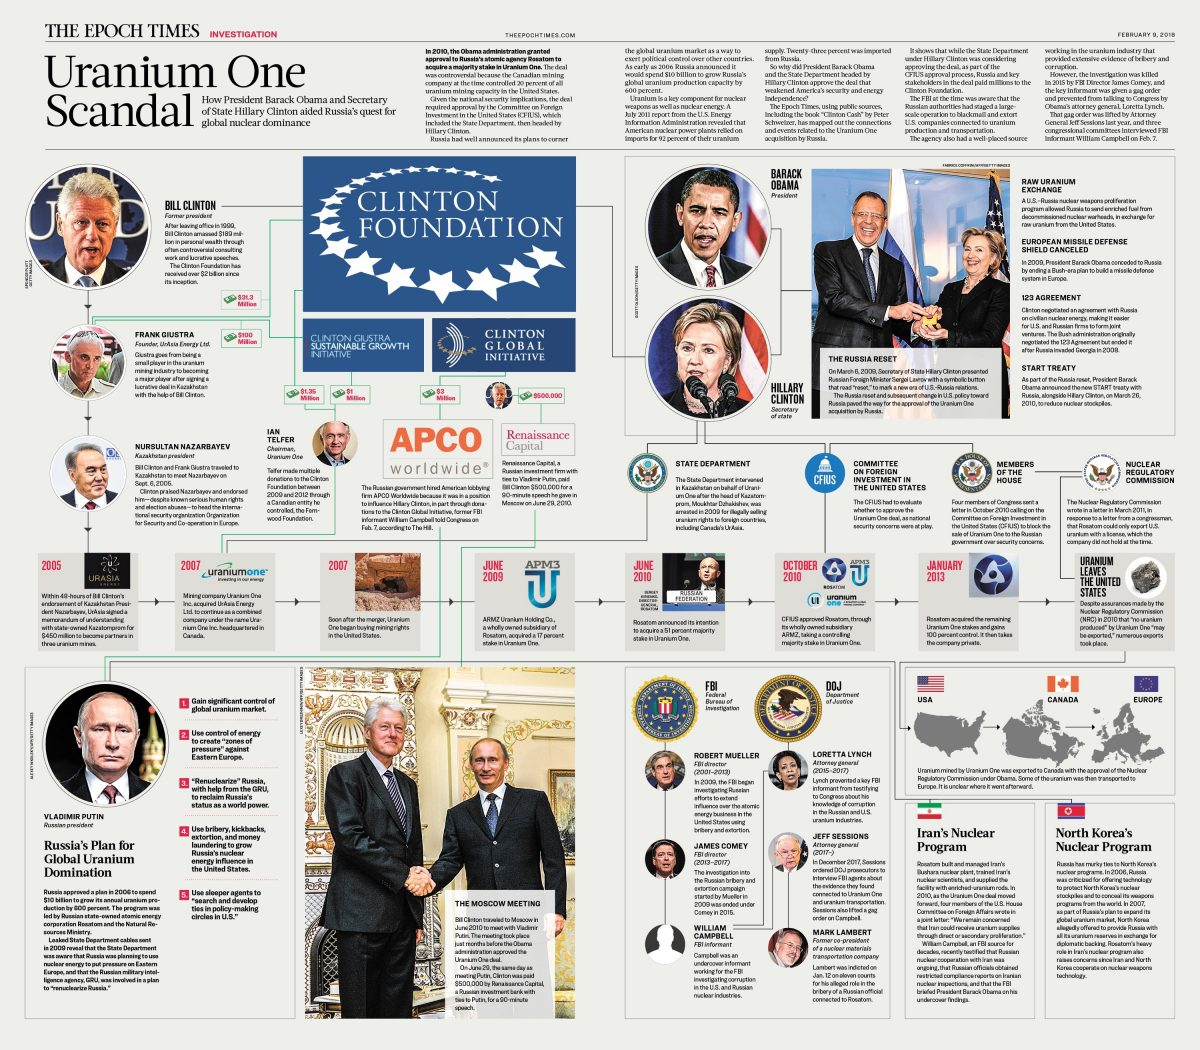 https://www.theepochtimes.com/assets/uploads/2018/02/09/EPOCH_TIMES_URANIUM_ONE_FINAL-1200x1050.jpg